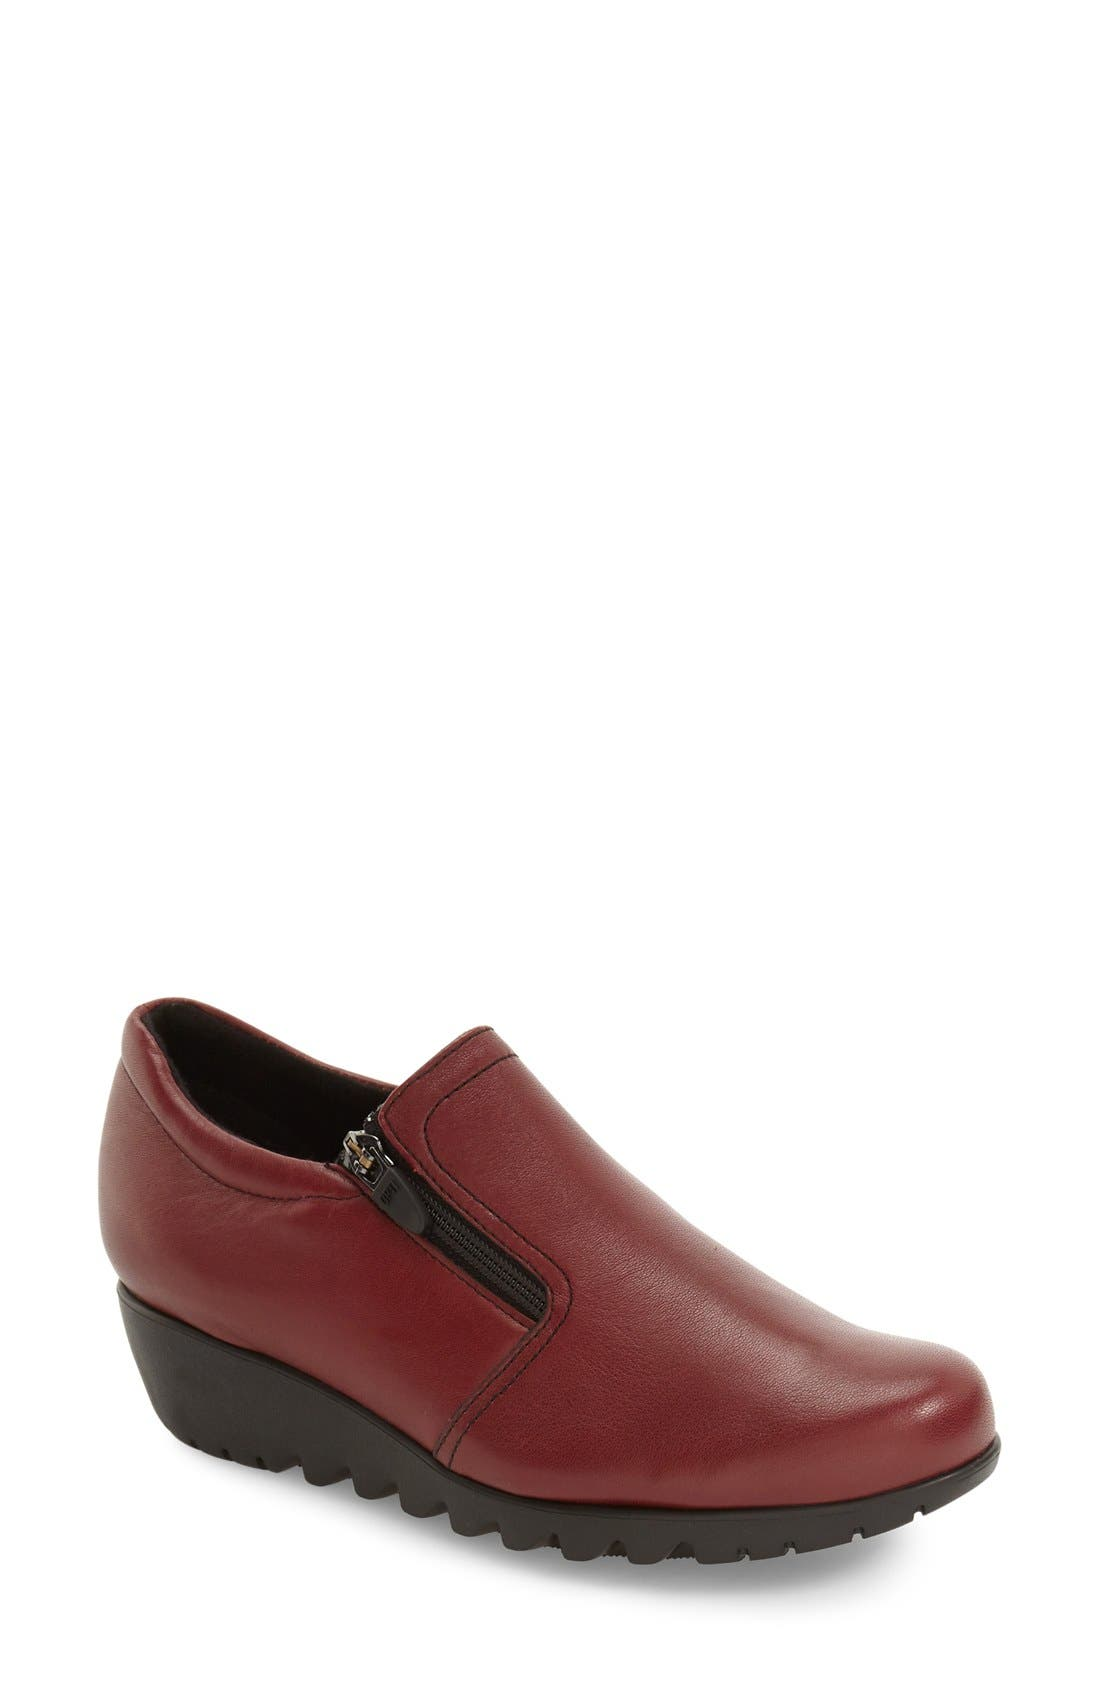 Napoli Zip Bootie,                             Main thumbnail 1, color,                             Red Leather